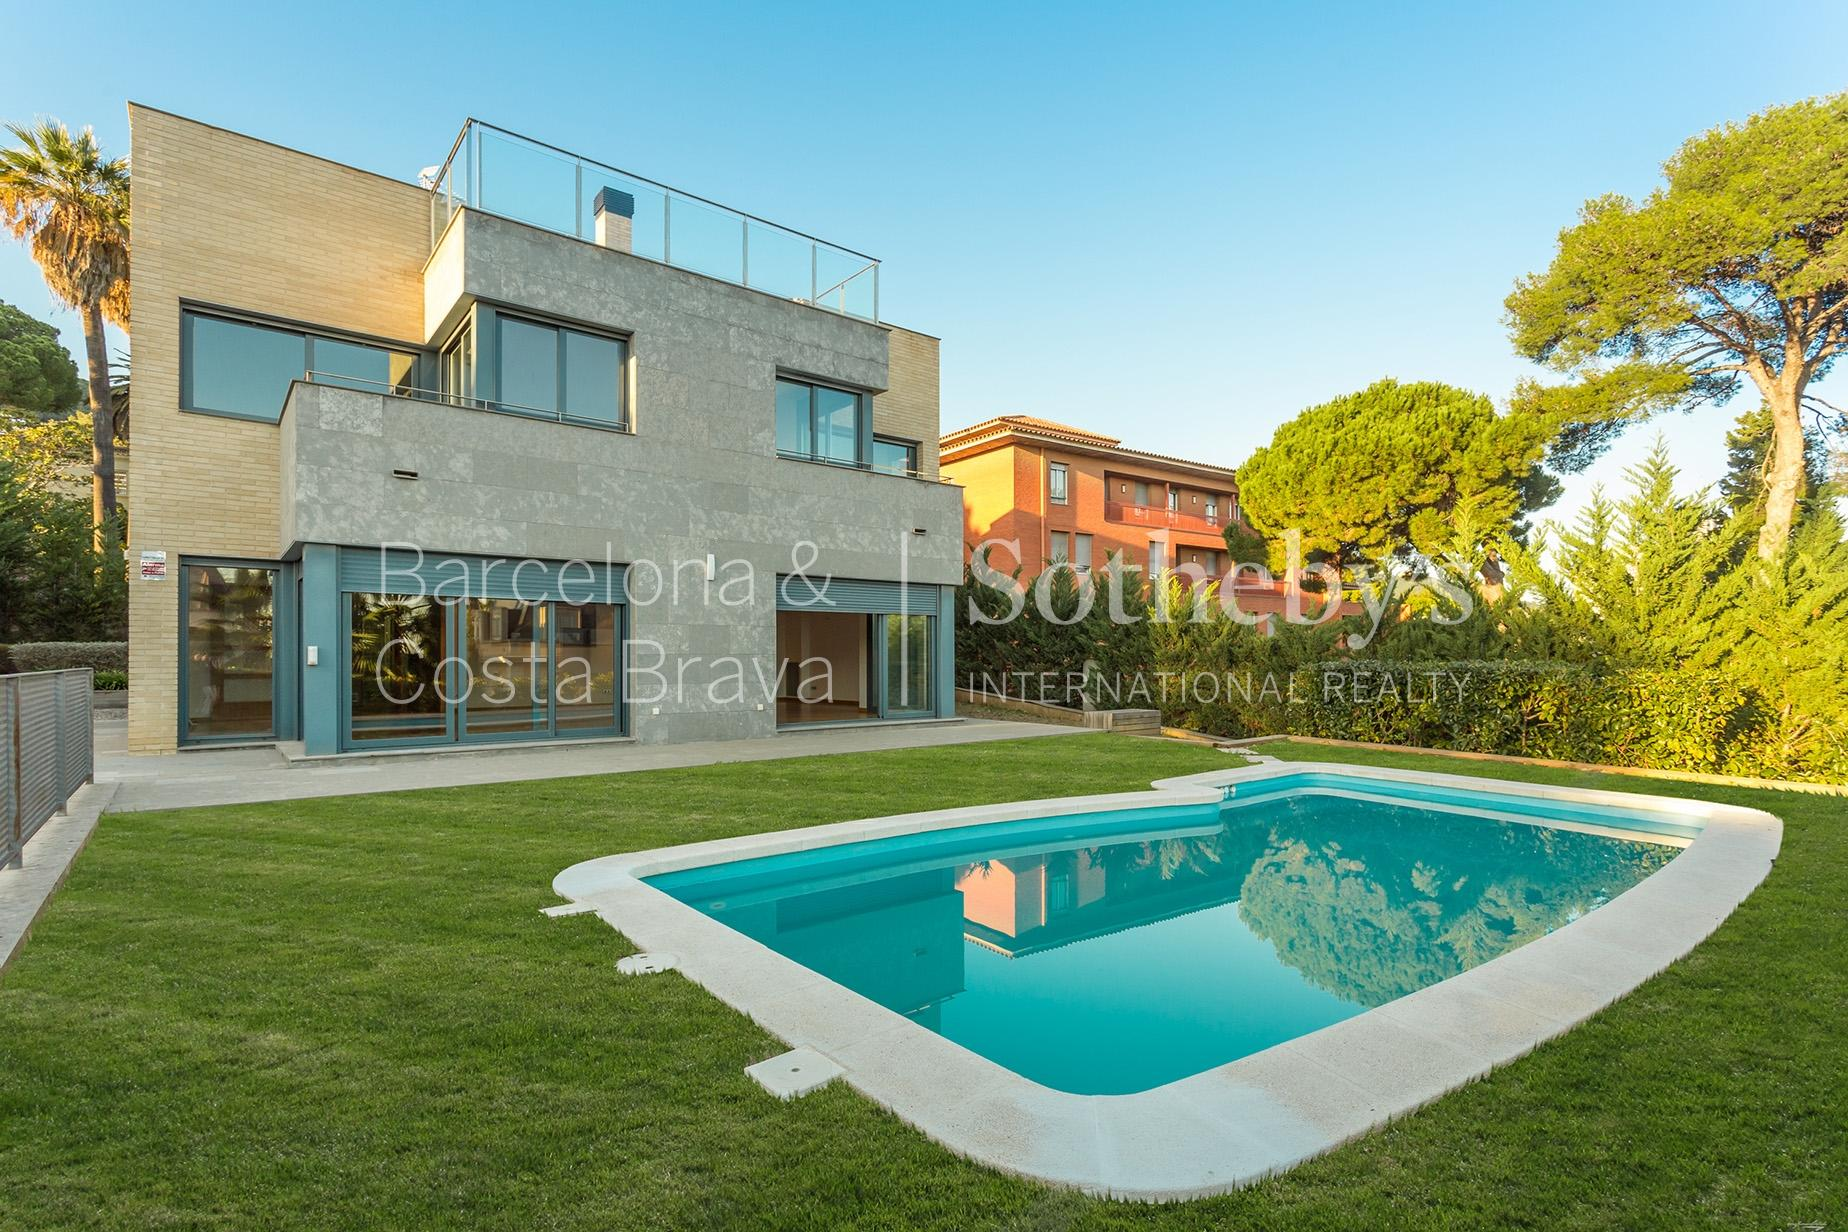 Property For Sale at Exclusive, Modern, and Minimal Single Family Home in Pedralbes